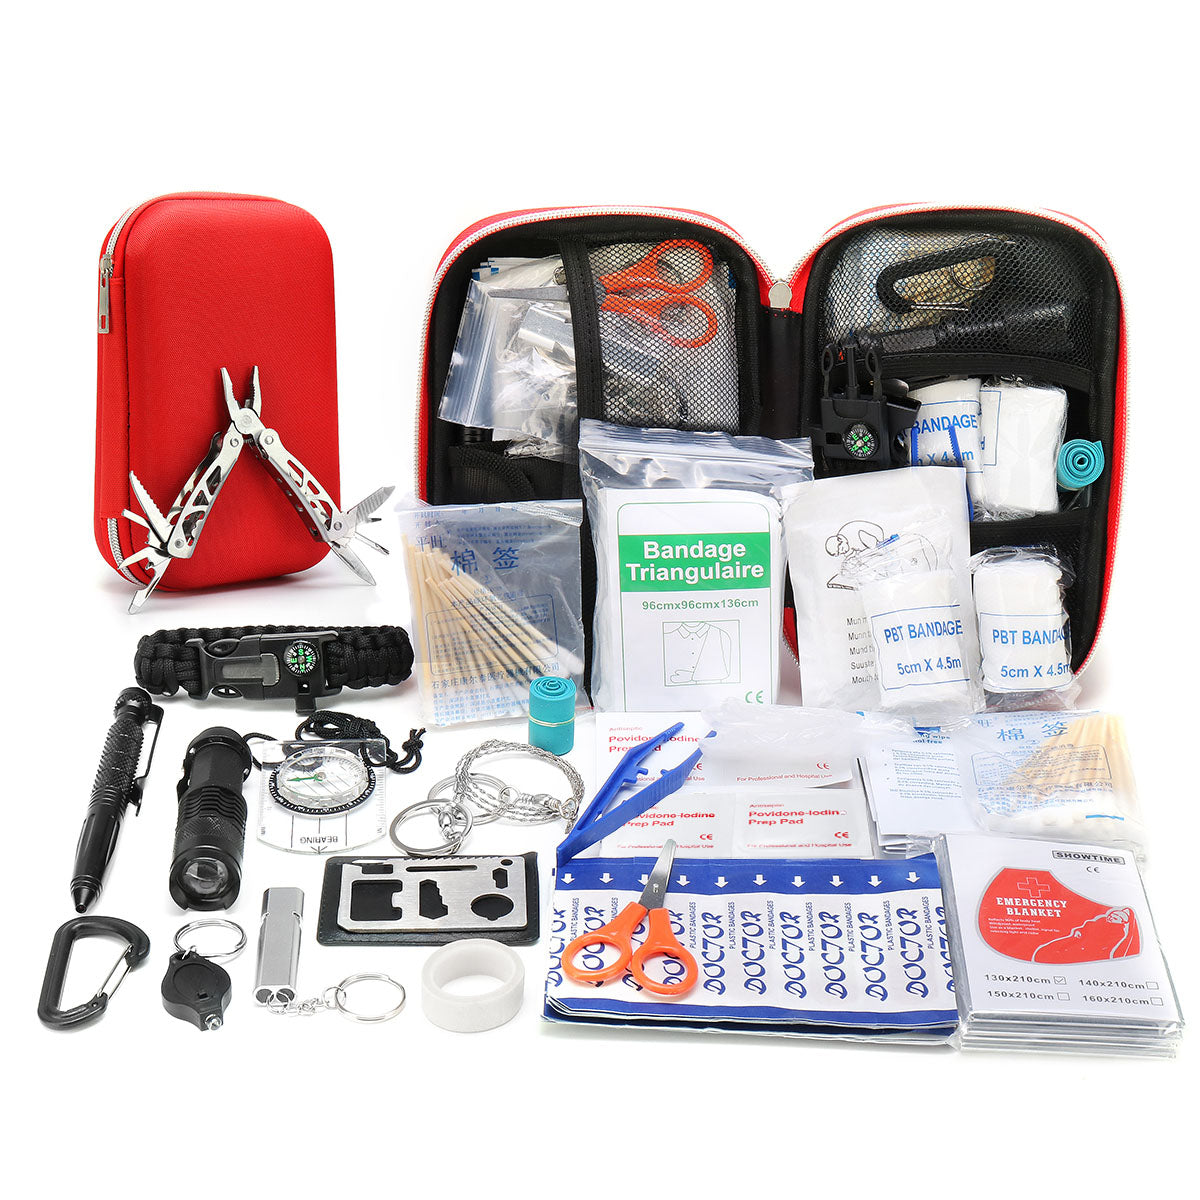 Emergency Camping Survival First Aid Kit Outdoor Gear Tool Box